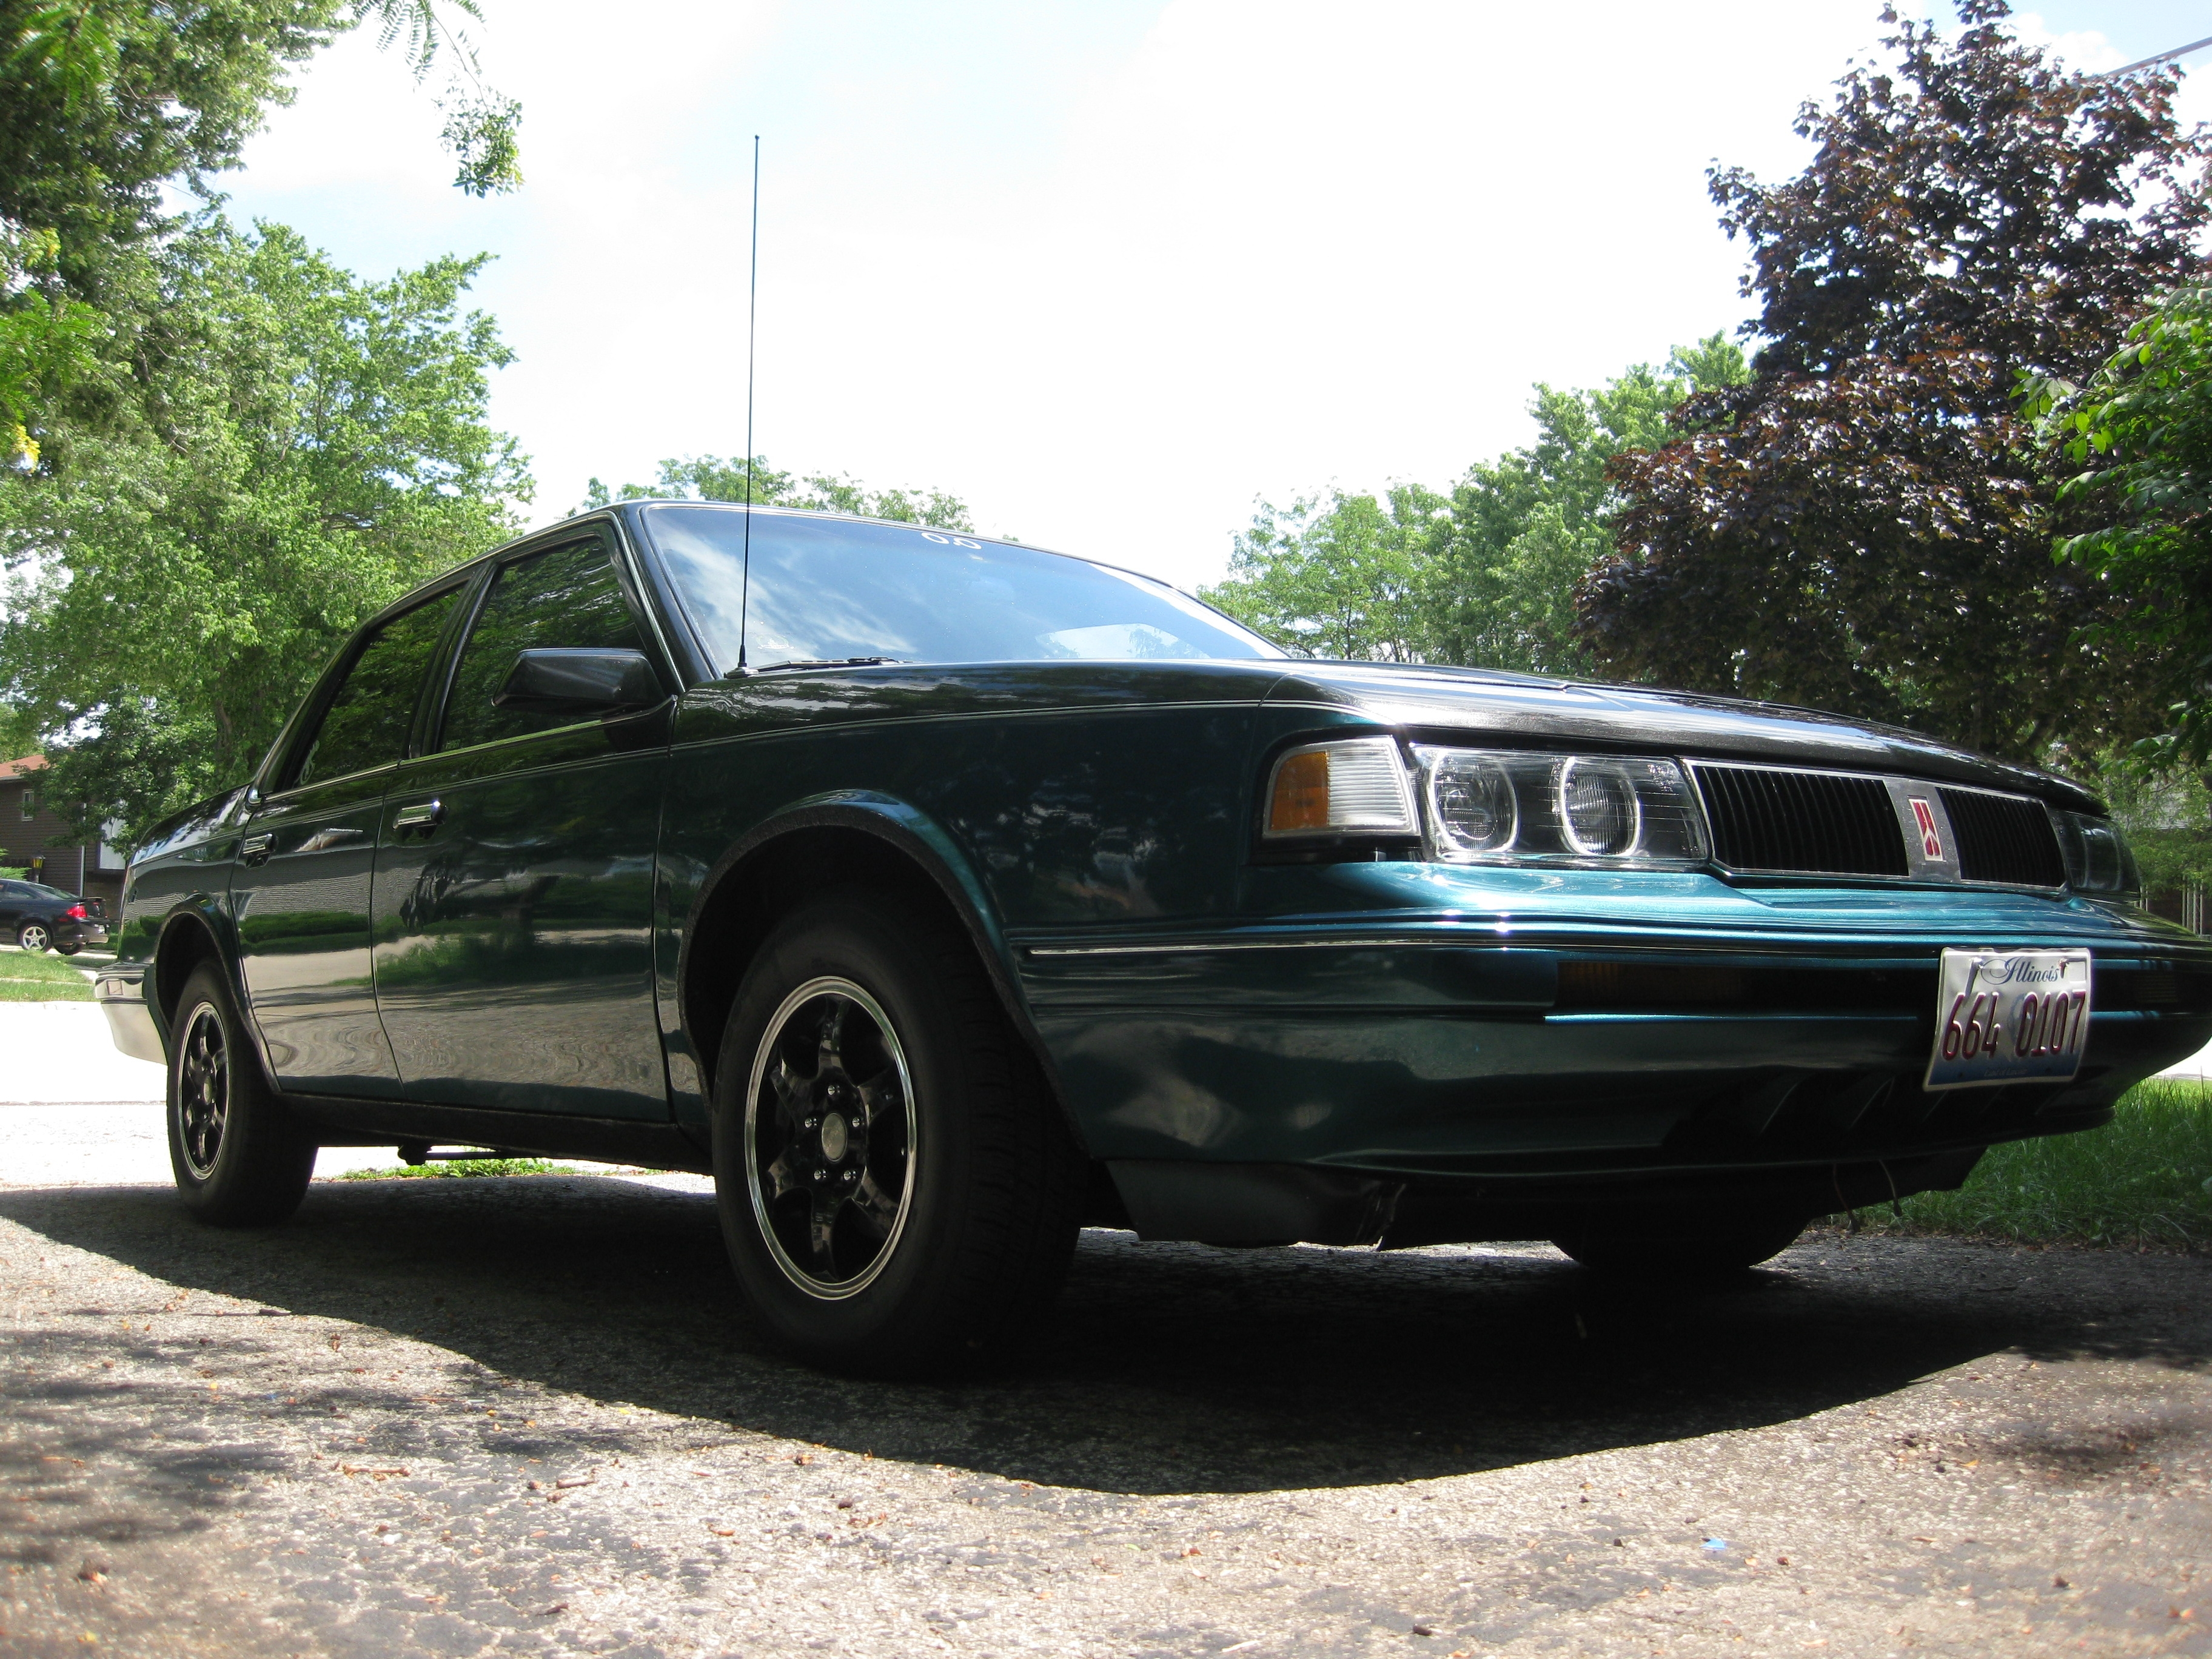 silentwing's 1994 Oldsmobile Cutlass Ciera